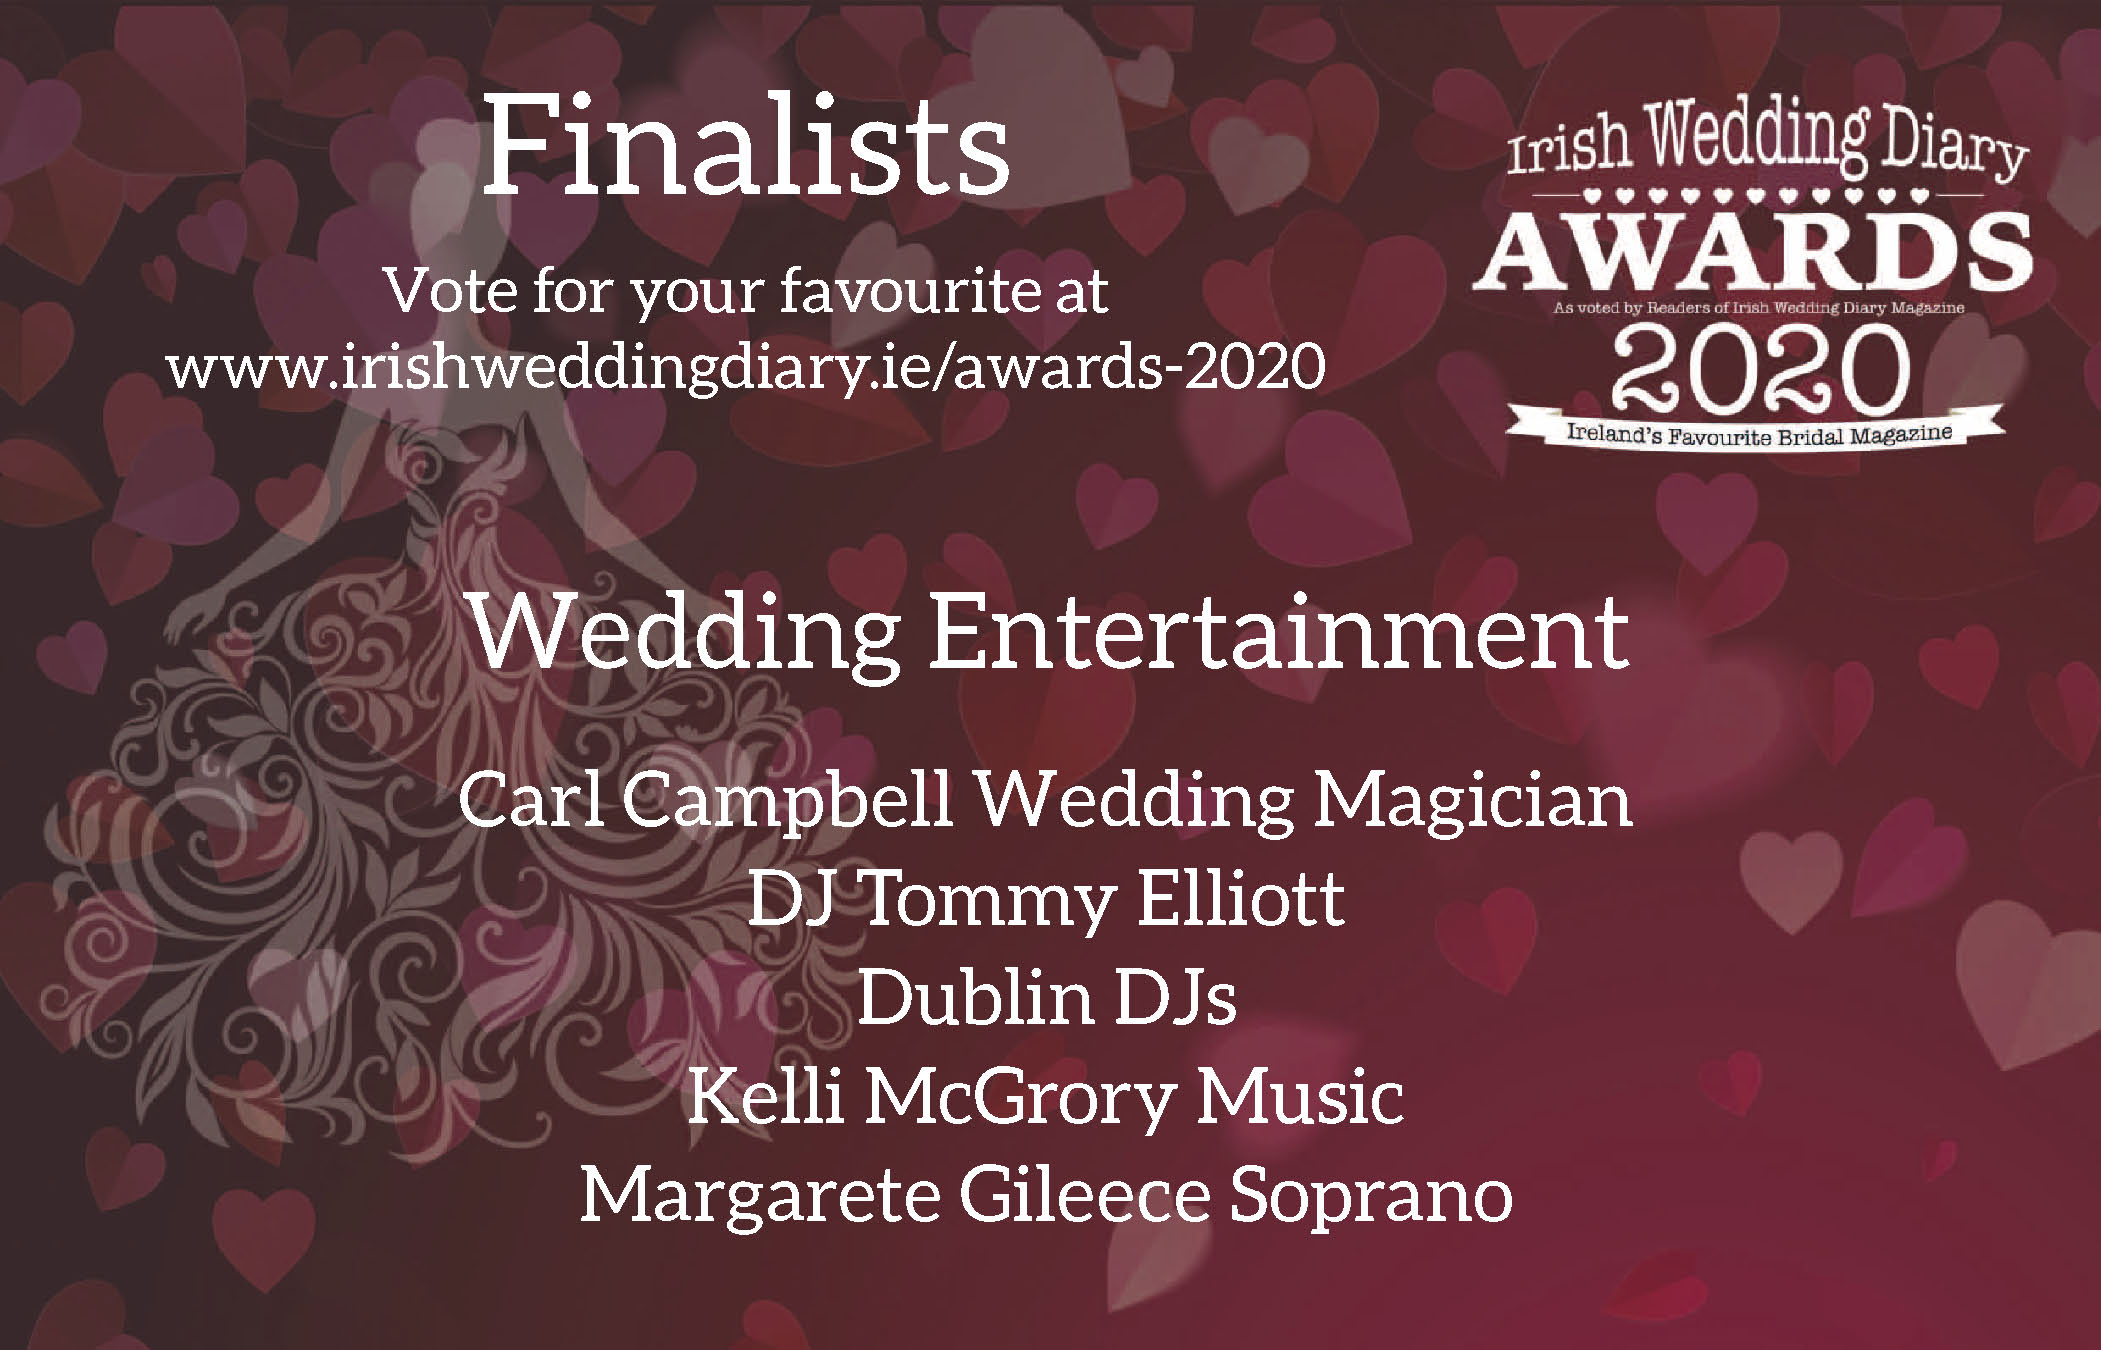 IWD-Awards-Finalists-2020_Wedding-Entertainment